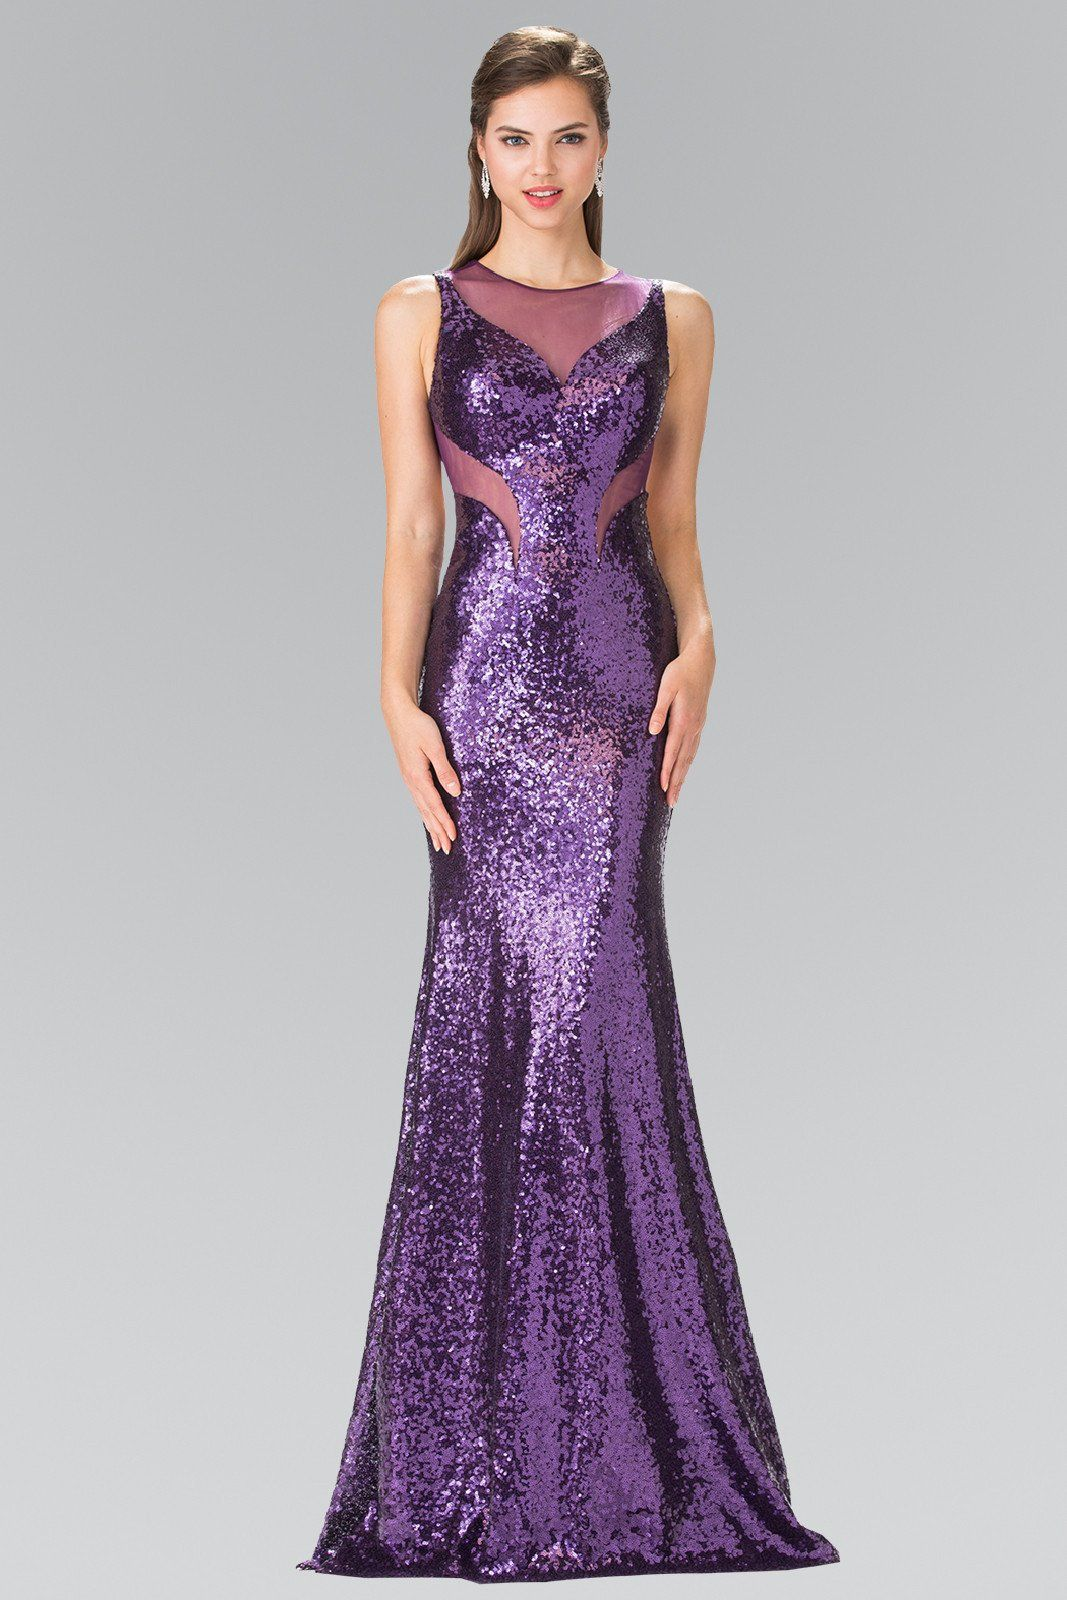 Sequins prom dress gl pinterest sequin prom dresses and